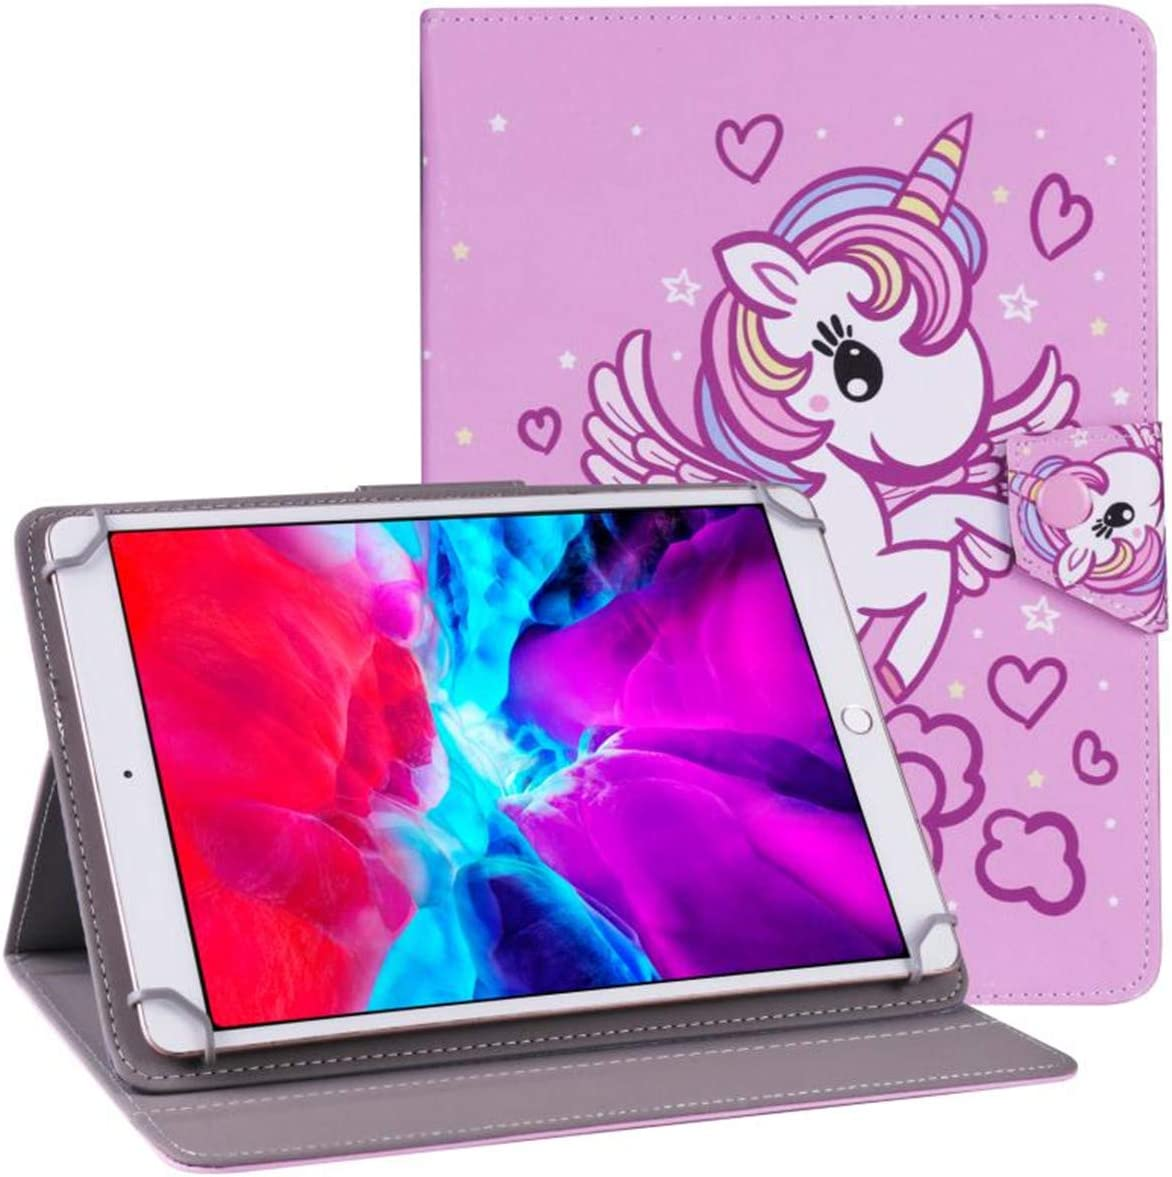 "PHEVOS 9.7-10.5 inch Tablet Universal Case Cover, Stand Folio Case, Comepatible with Samsung Galaxy Tab/Kindle Fire/Fire HD/Kindle Fire HDX/RCA and More 9.7""-10.5"" Tablets - Pink Unicorn"